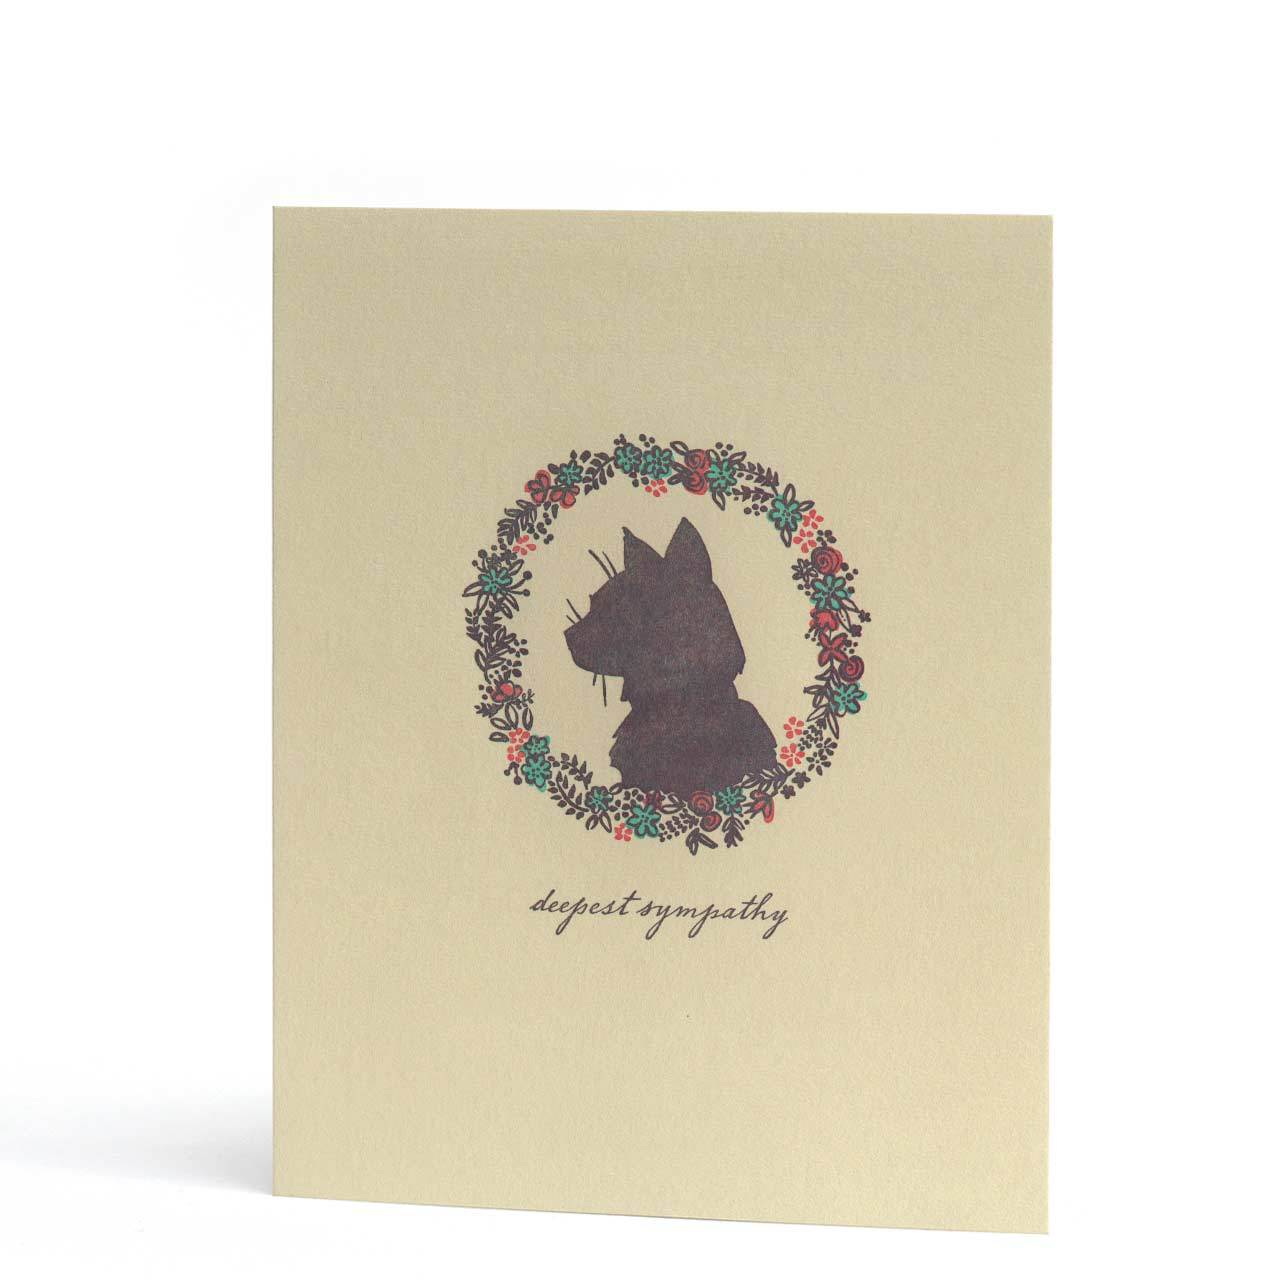 Deepest Sympathy Cat Letterpress Greeting Card